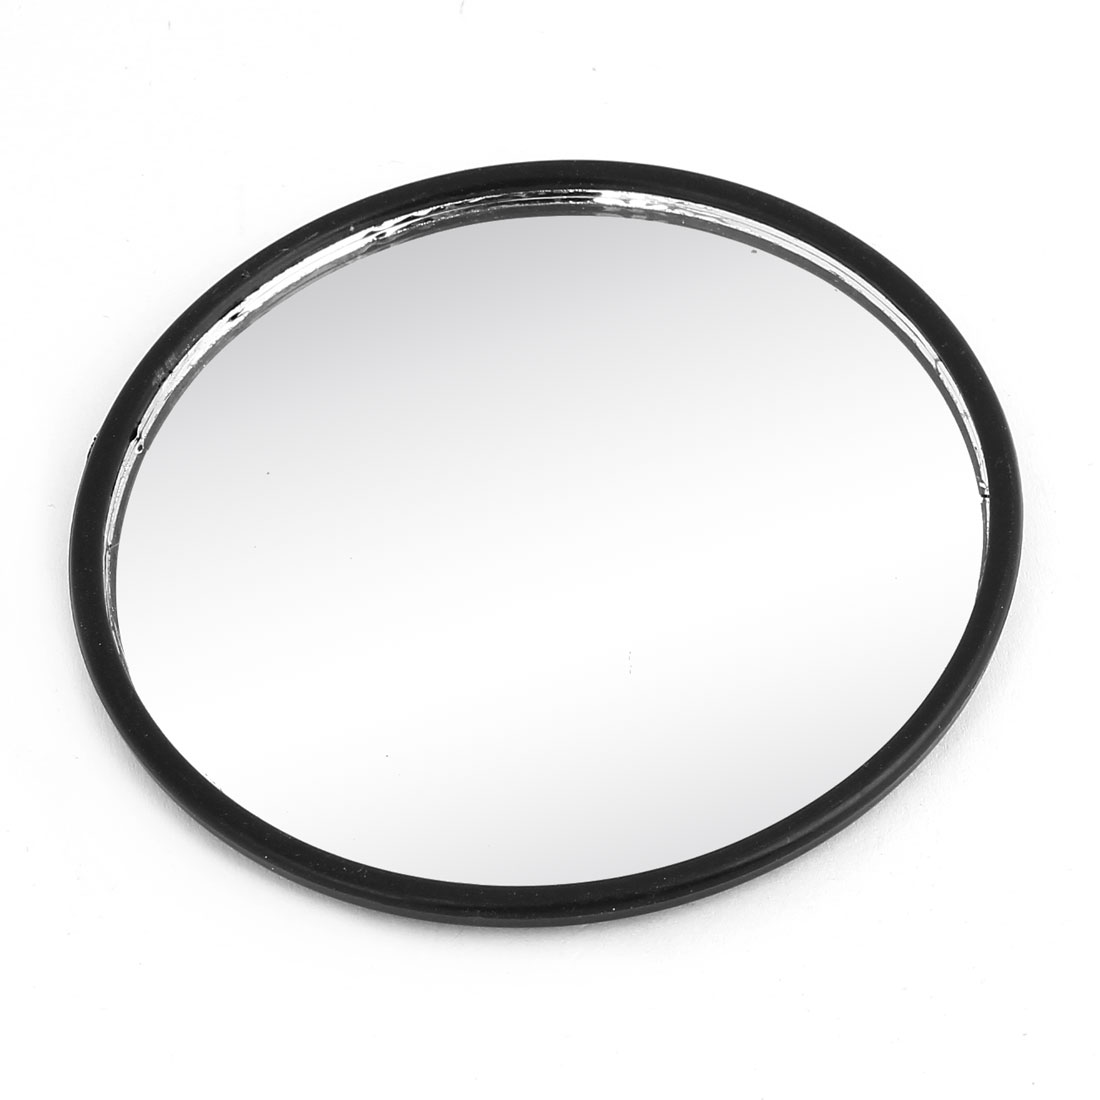 80mm Dia Self-Adhesive Car Rearview Blindspot Mirror Black Plastic